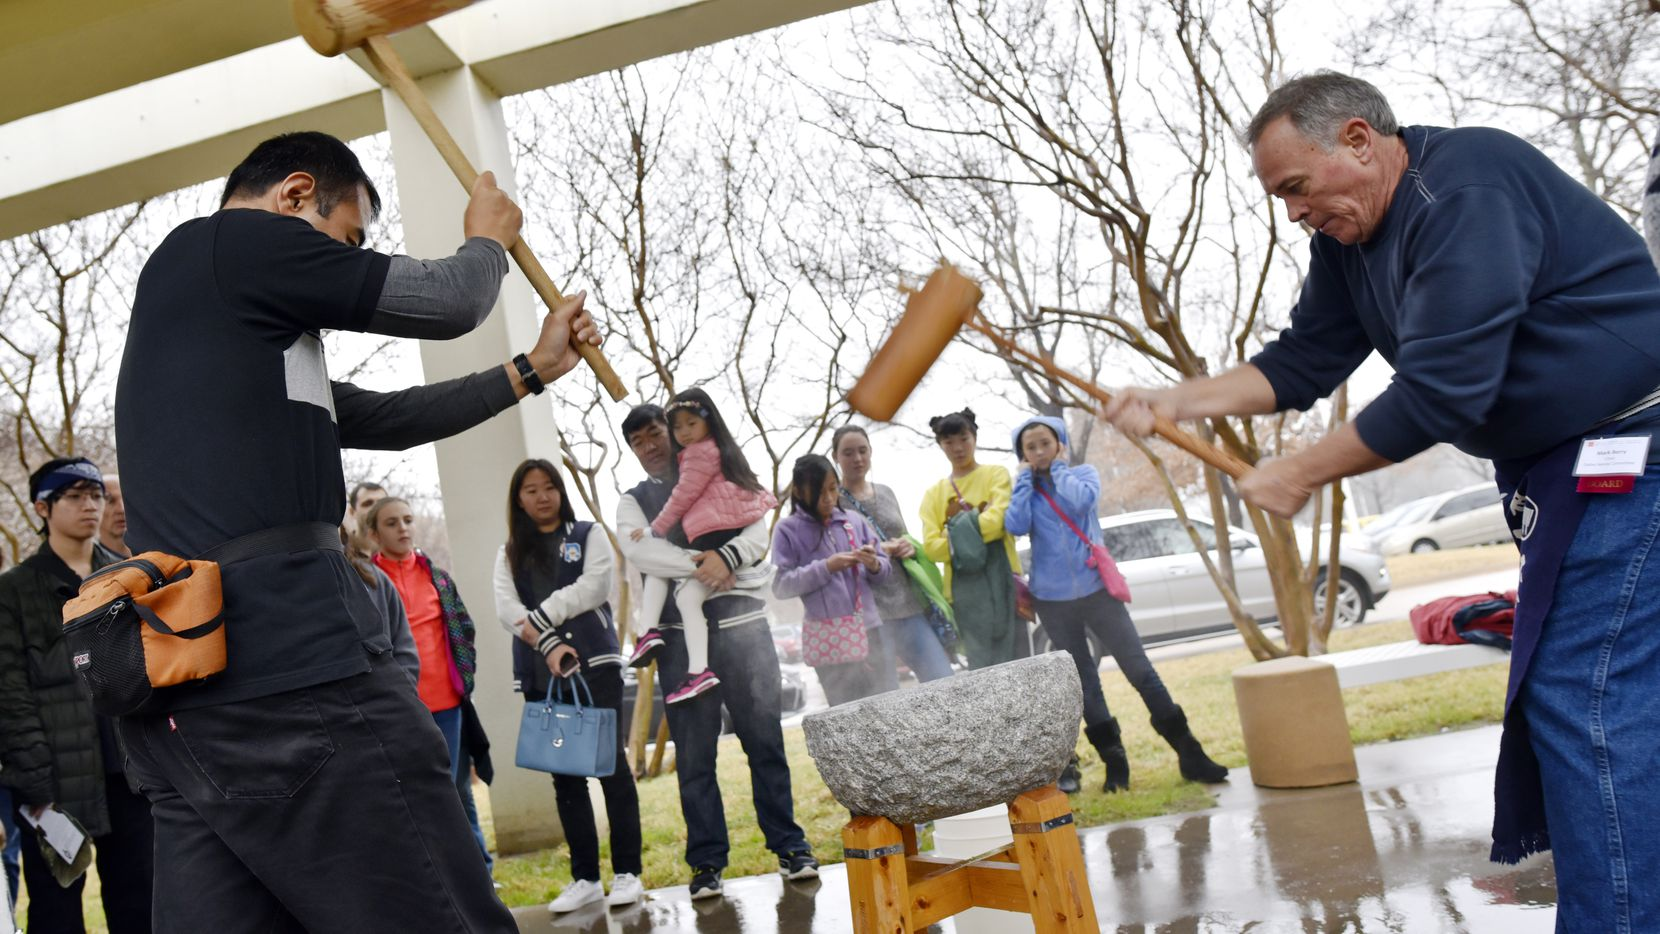 Mallets are used to pound rice into cake form at the annual Mochitsuki celebration hosted by the Japan-American Society of Dallas/Fort Worth.